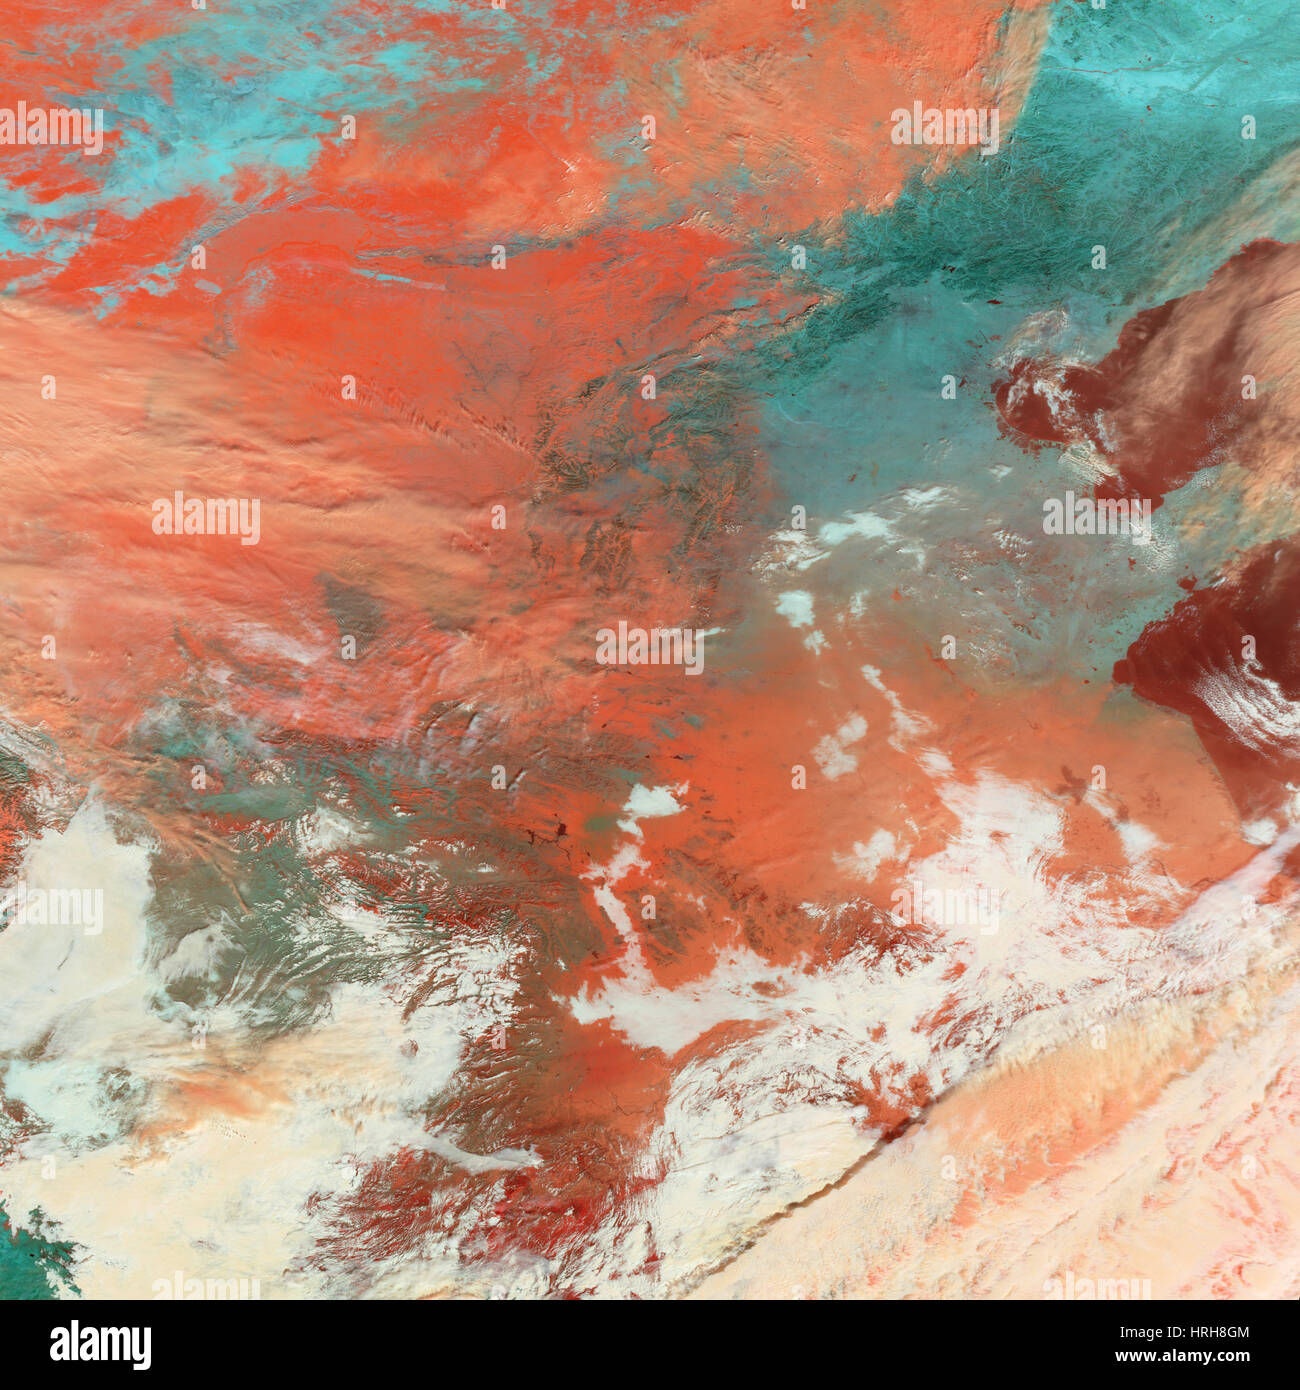 Southern China Snowfall, MODIS Image, 2008 - Stock Image